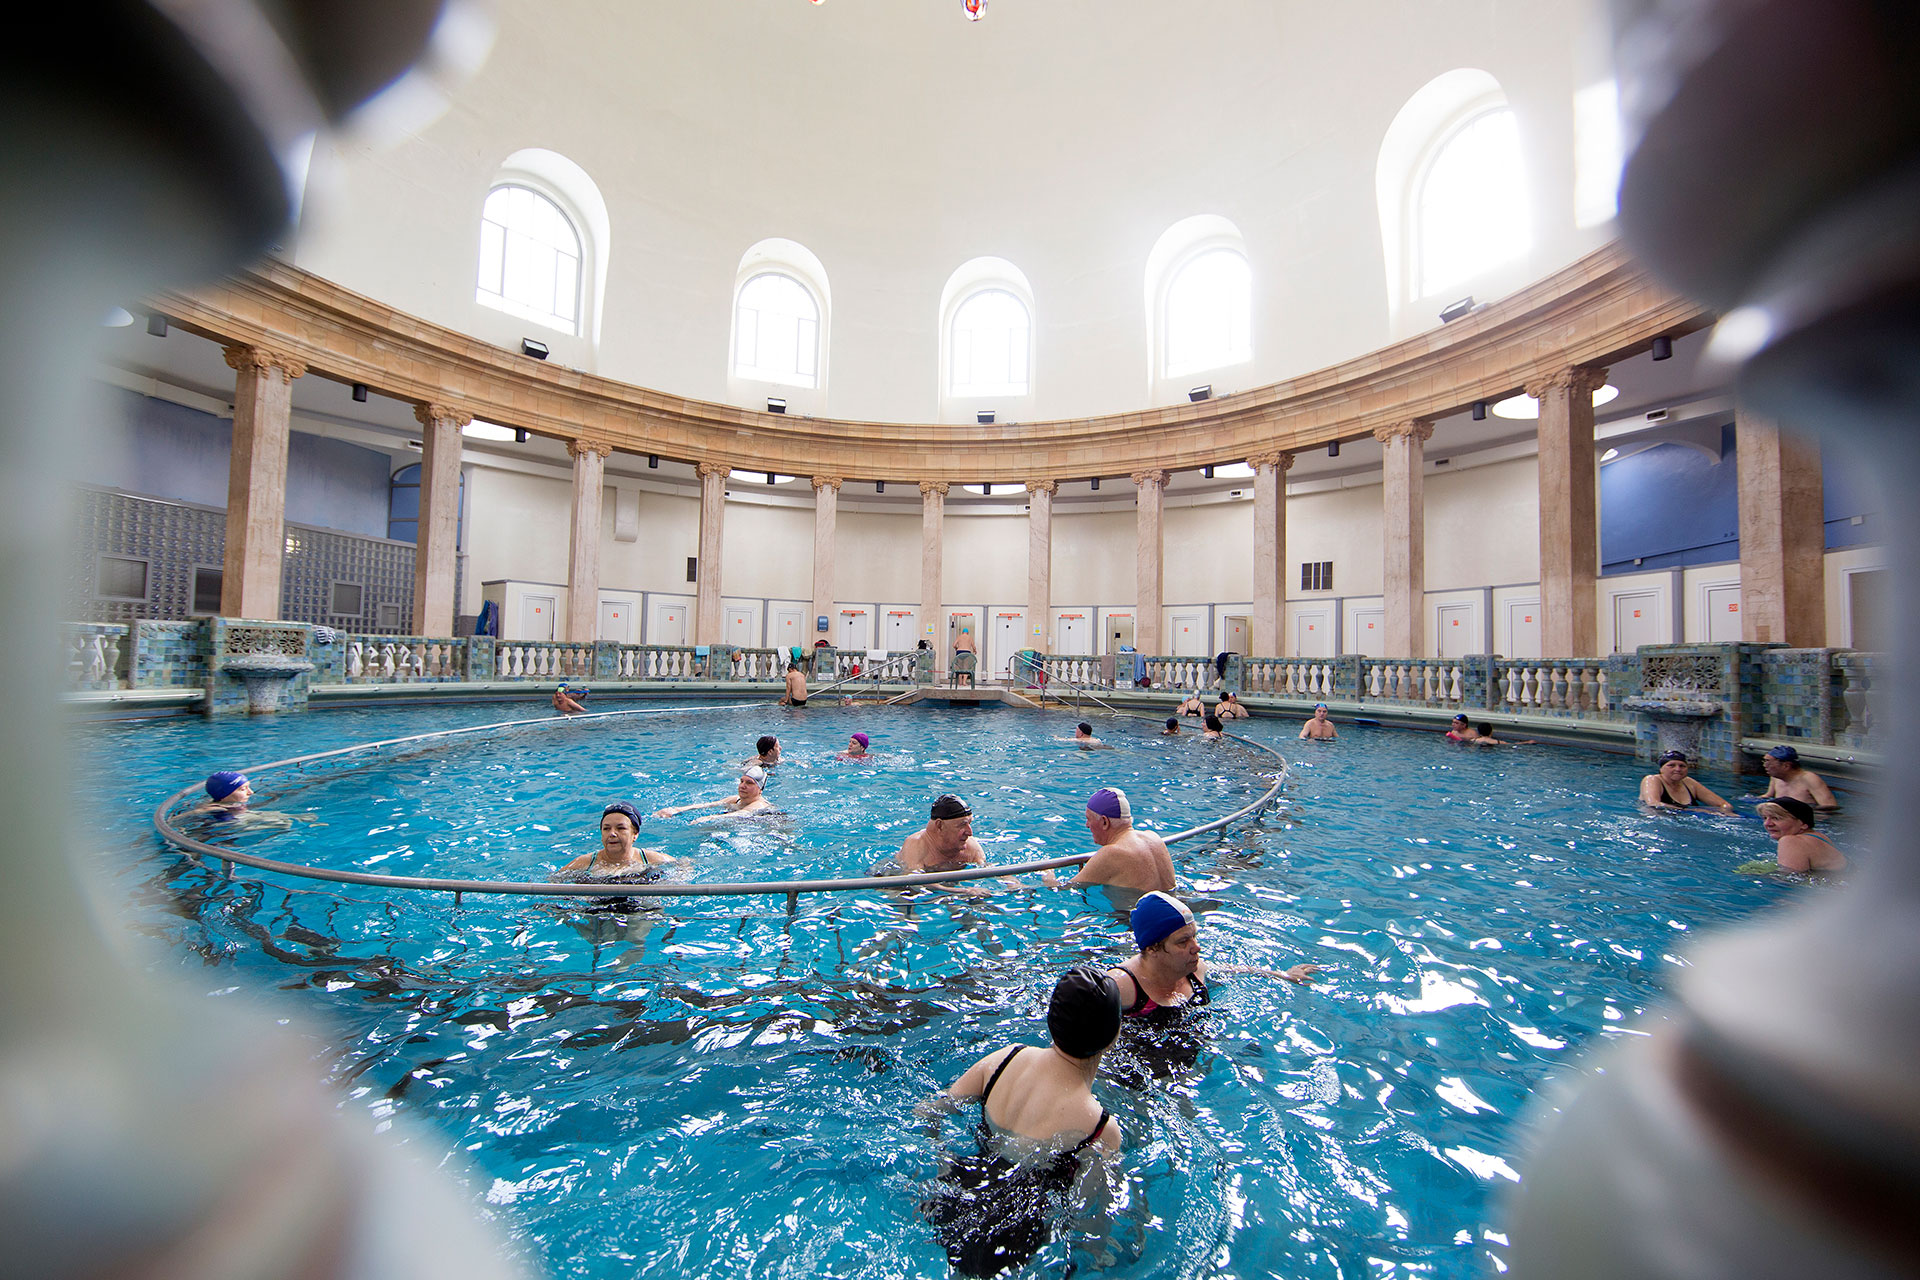 Piscine ronde nancy thermal nancy - Piscine ronde nancy ...